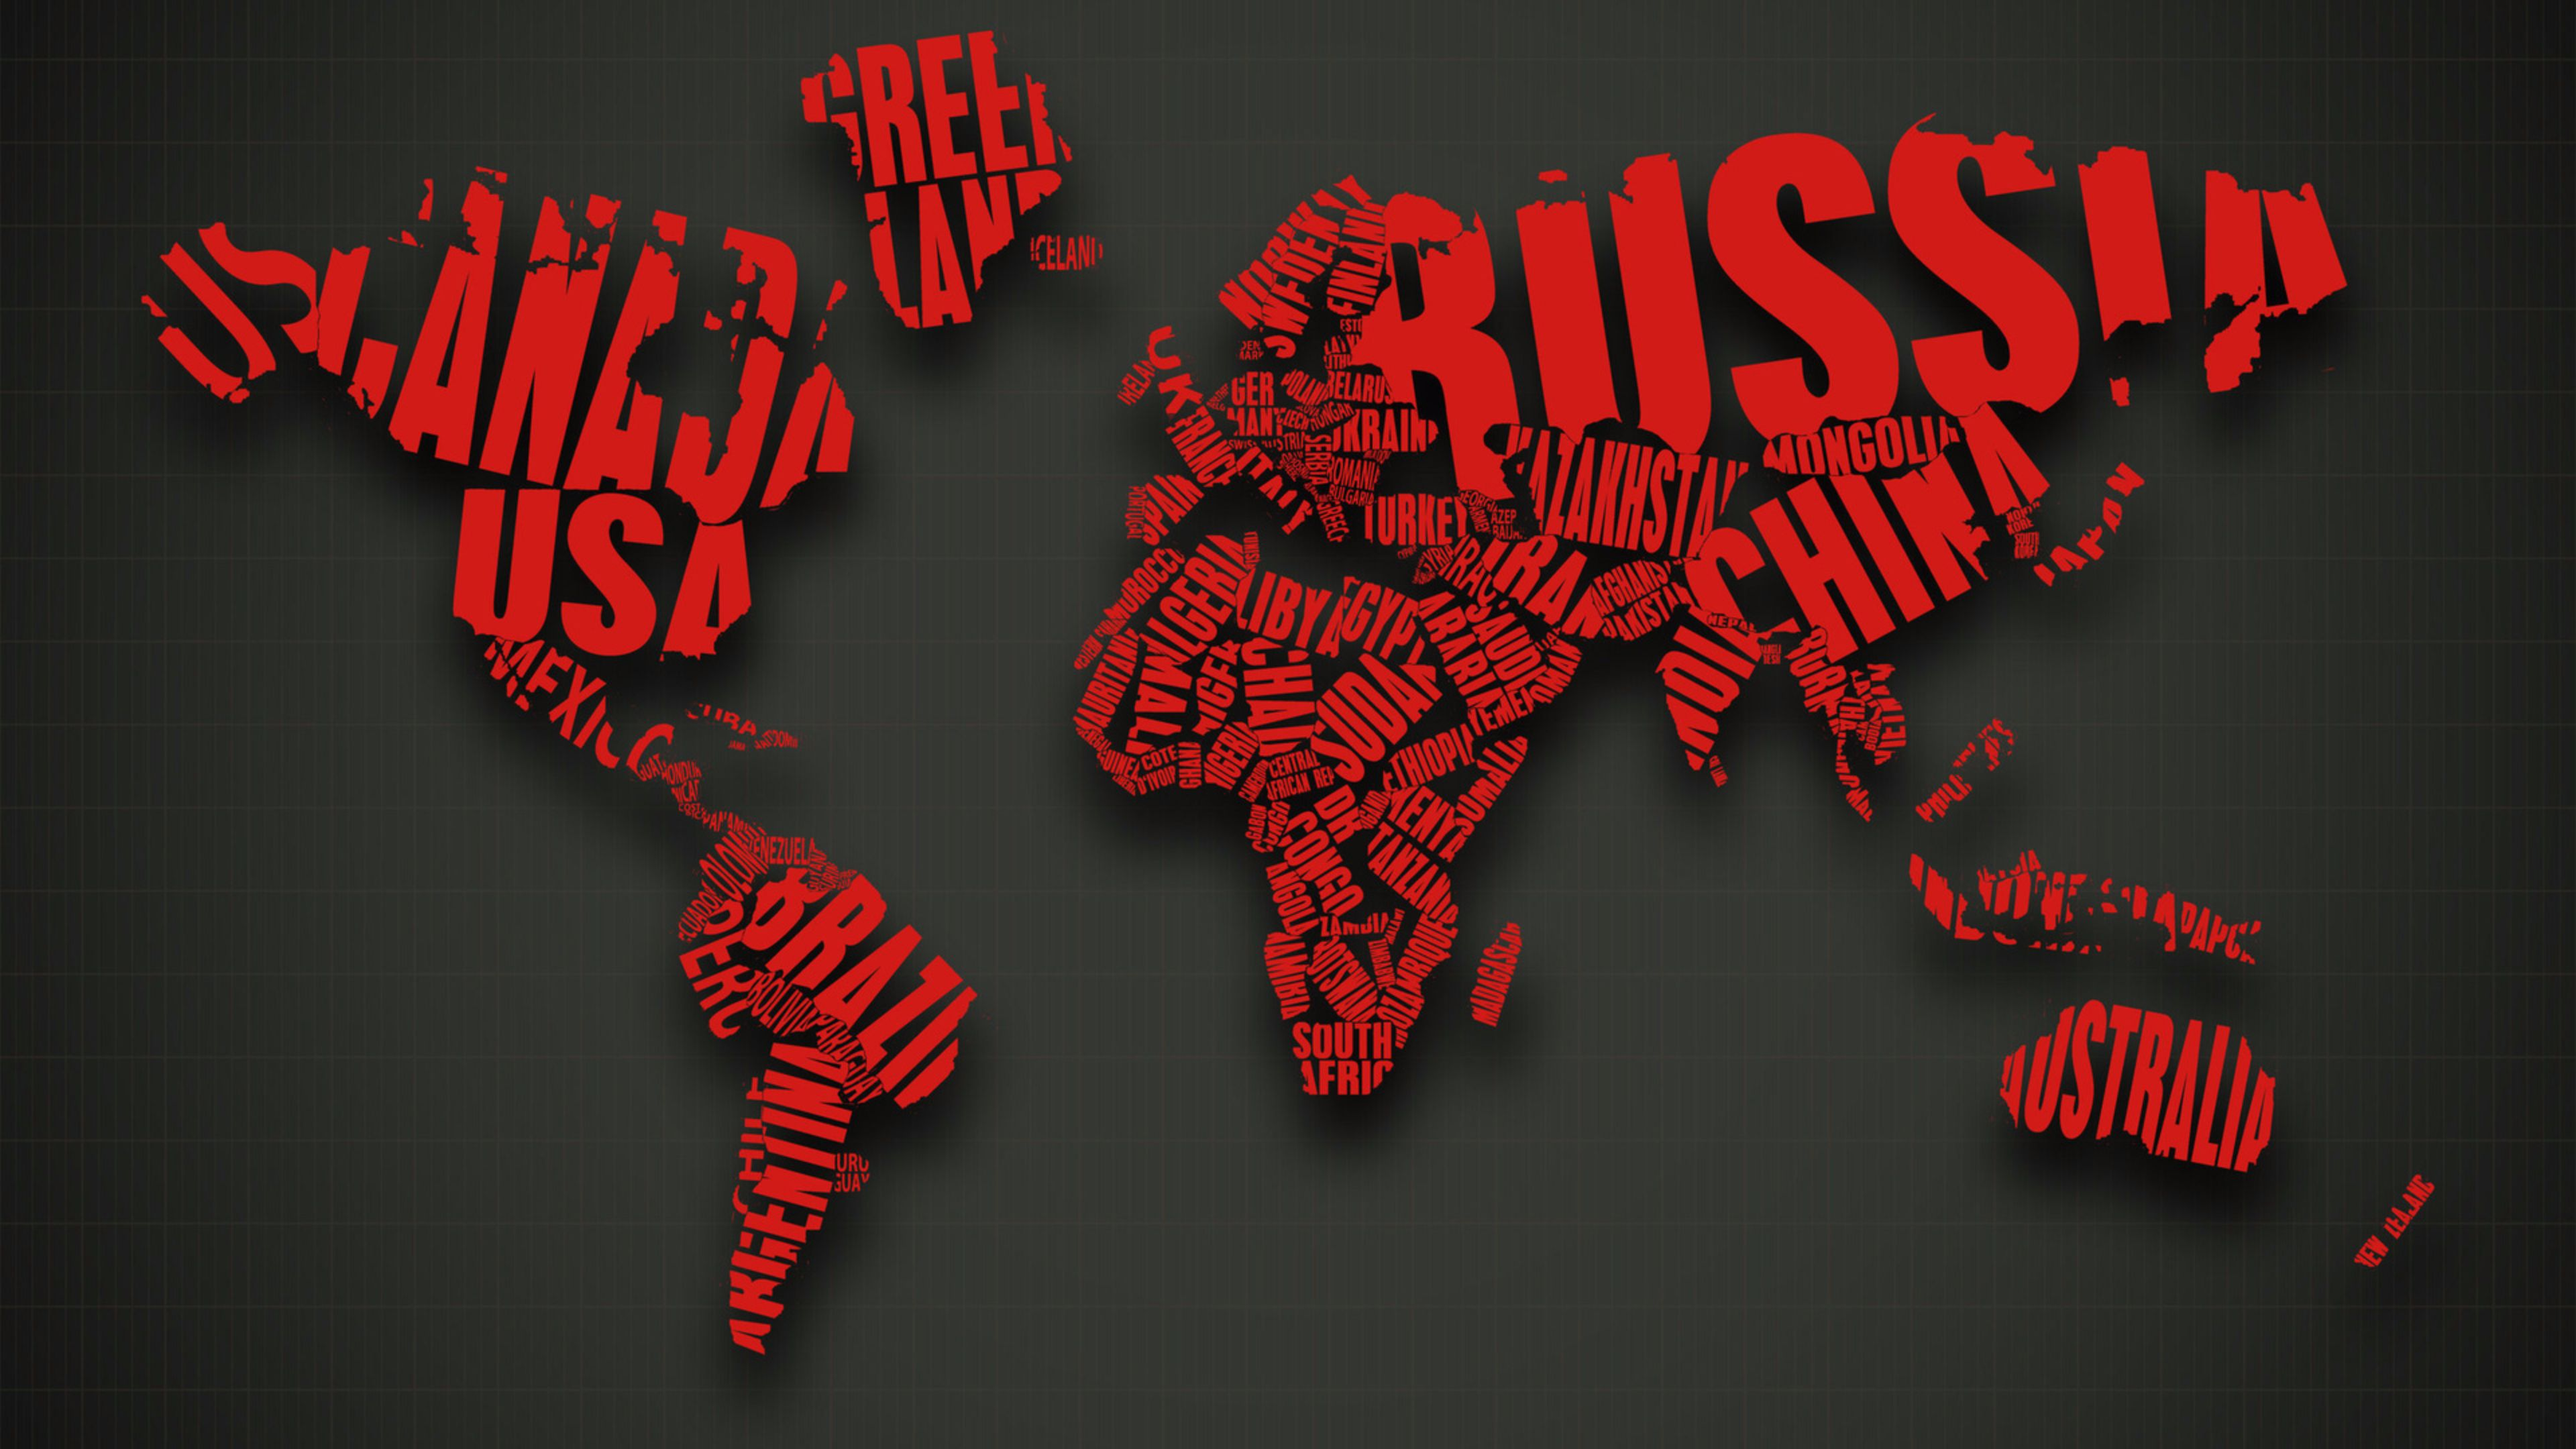 Free Download World Map Abstract 4k Wallpaper 3840x2160 For Your